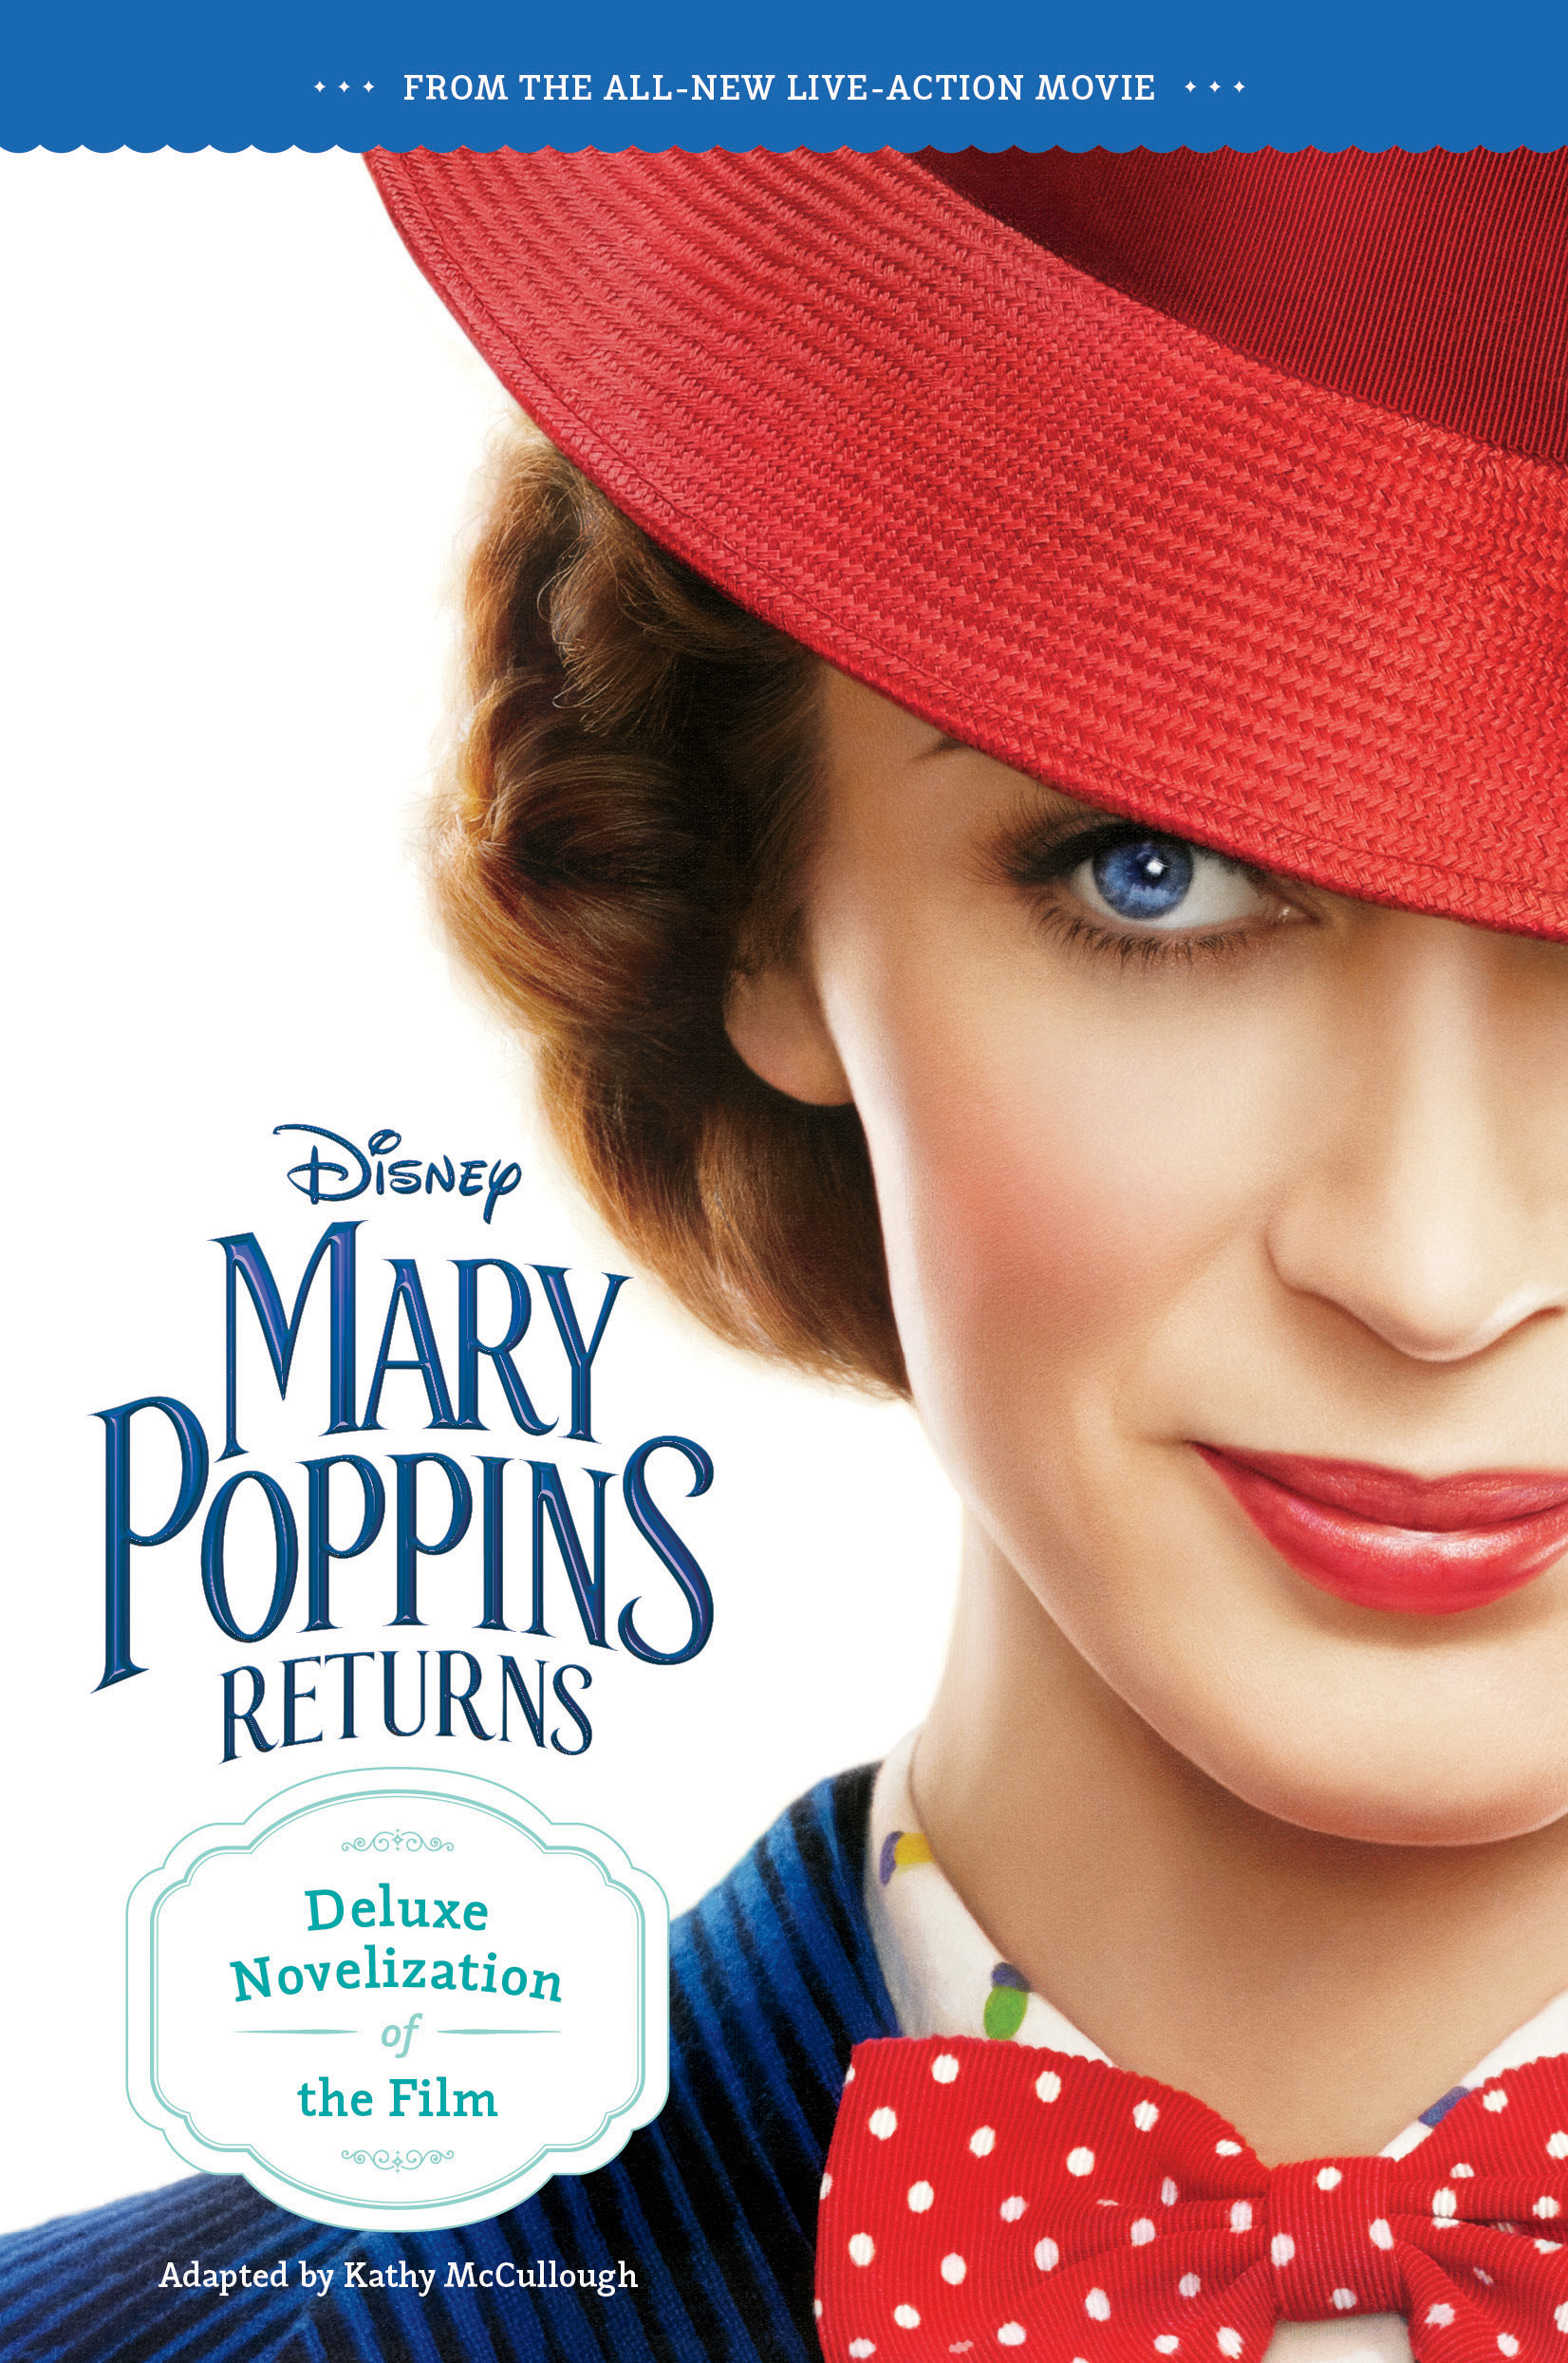 Mary Poppins Returns Deluxe Novelization-9781328512741